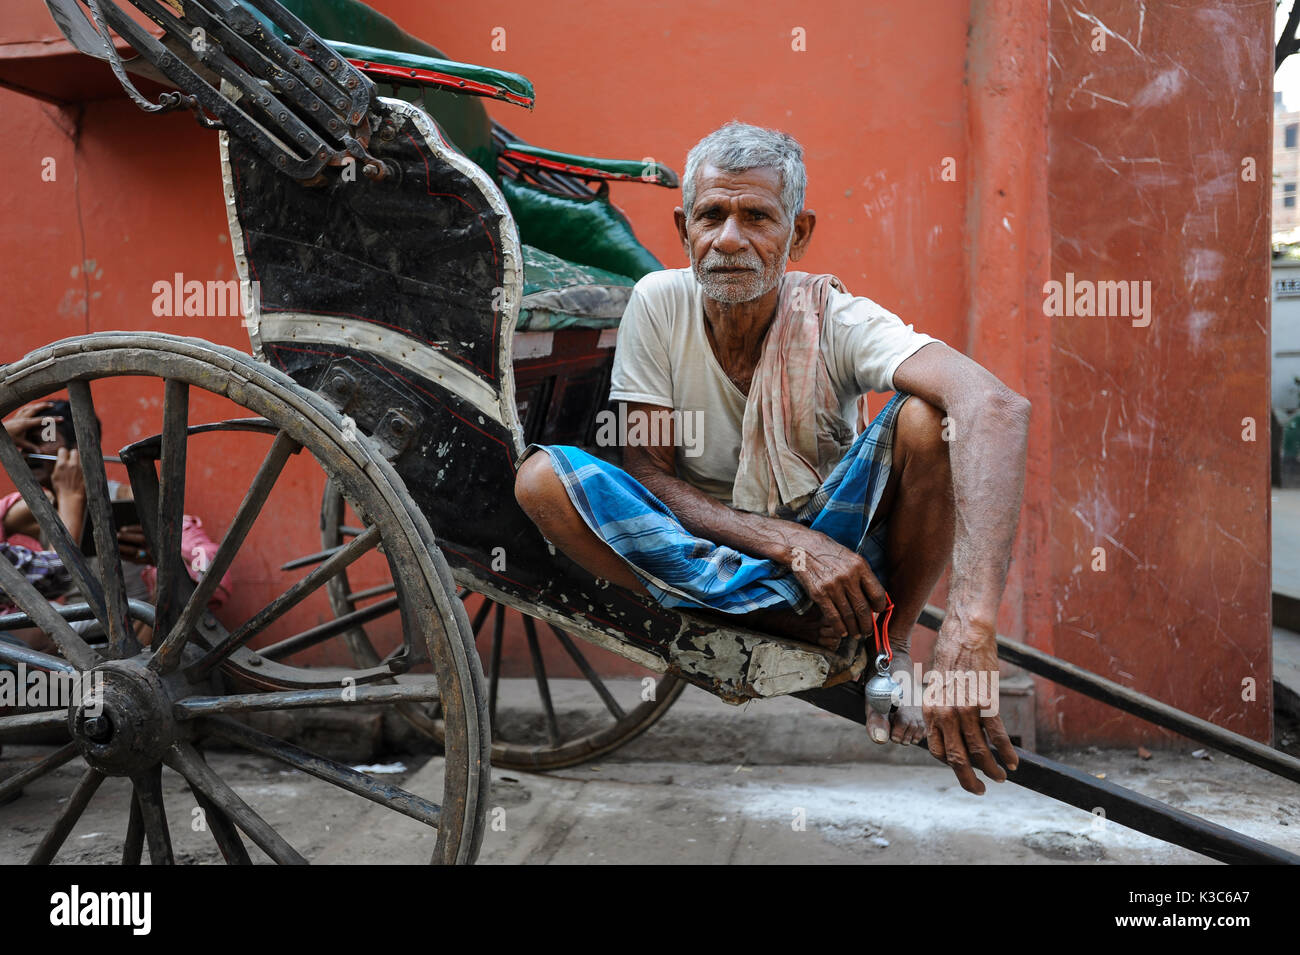 26.02.2011, Kolkata, West Bengal, India, Asia - A rickshaw puller waits for passengers at a roadside in Kolkata. - Stock Image